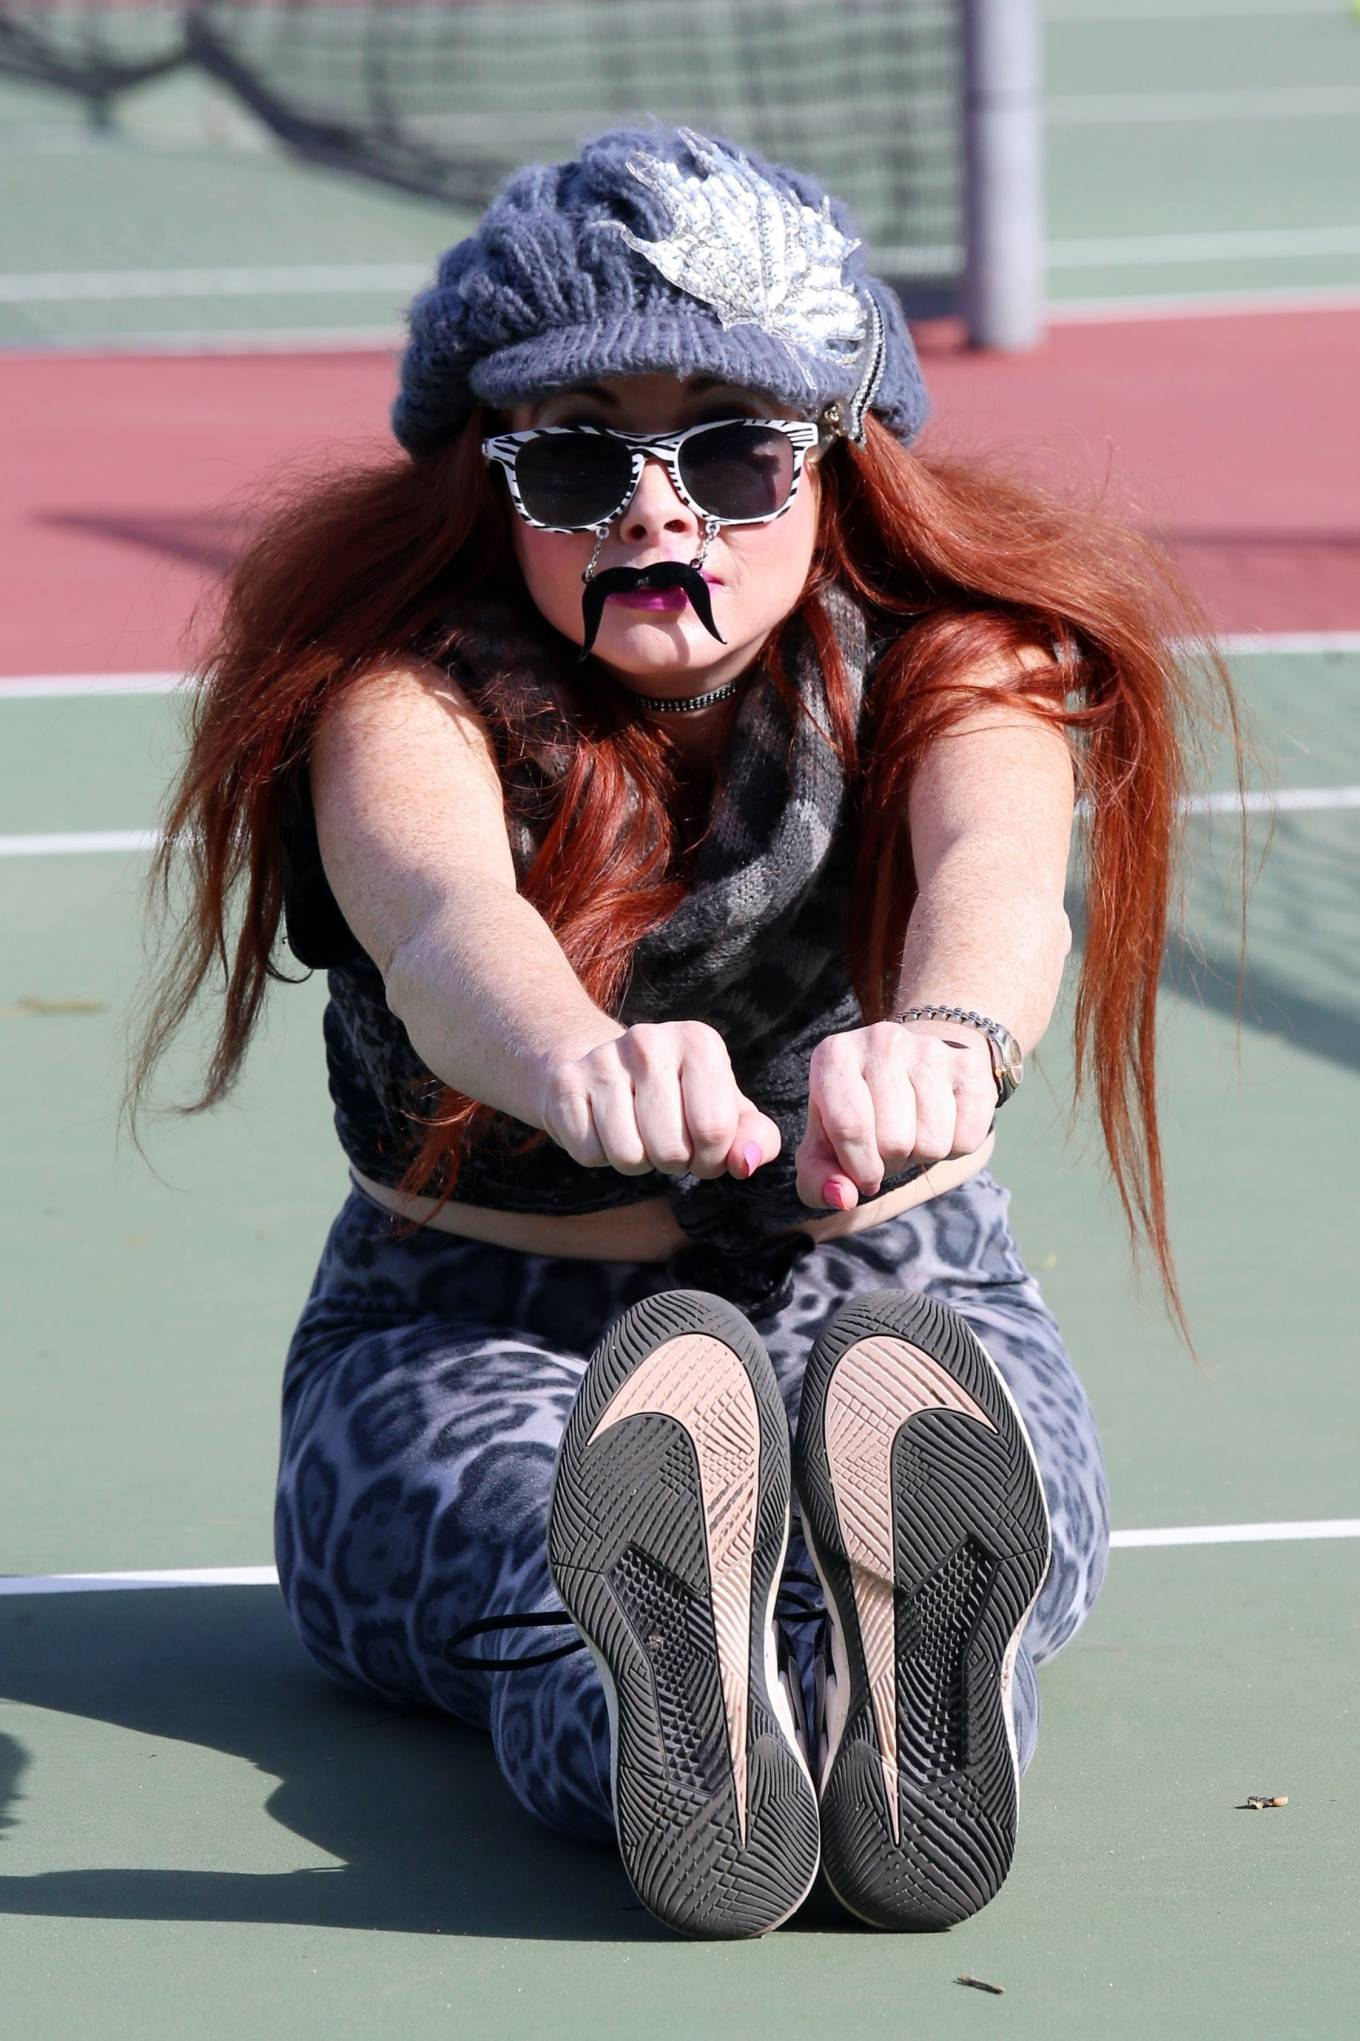 Phoebe Price - Stretchingat the tennis courts in Los Angeles